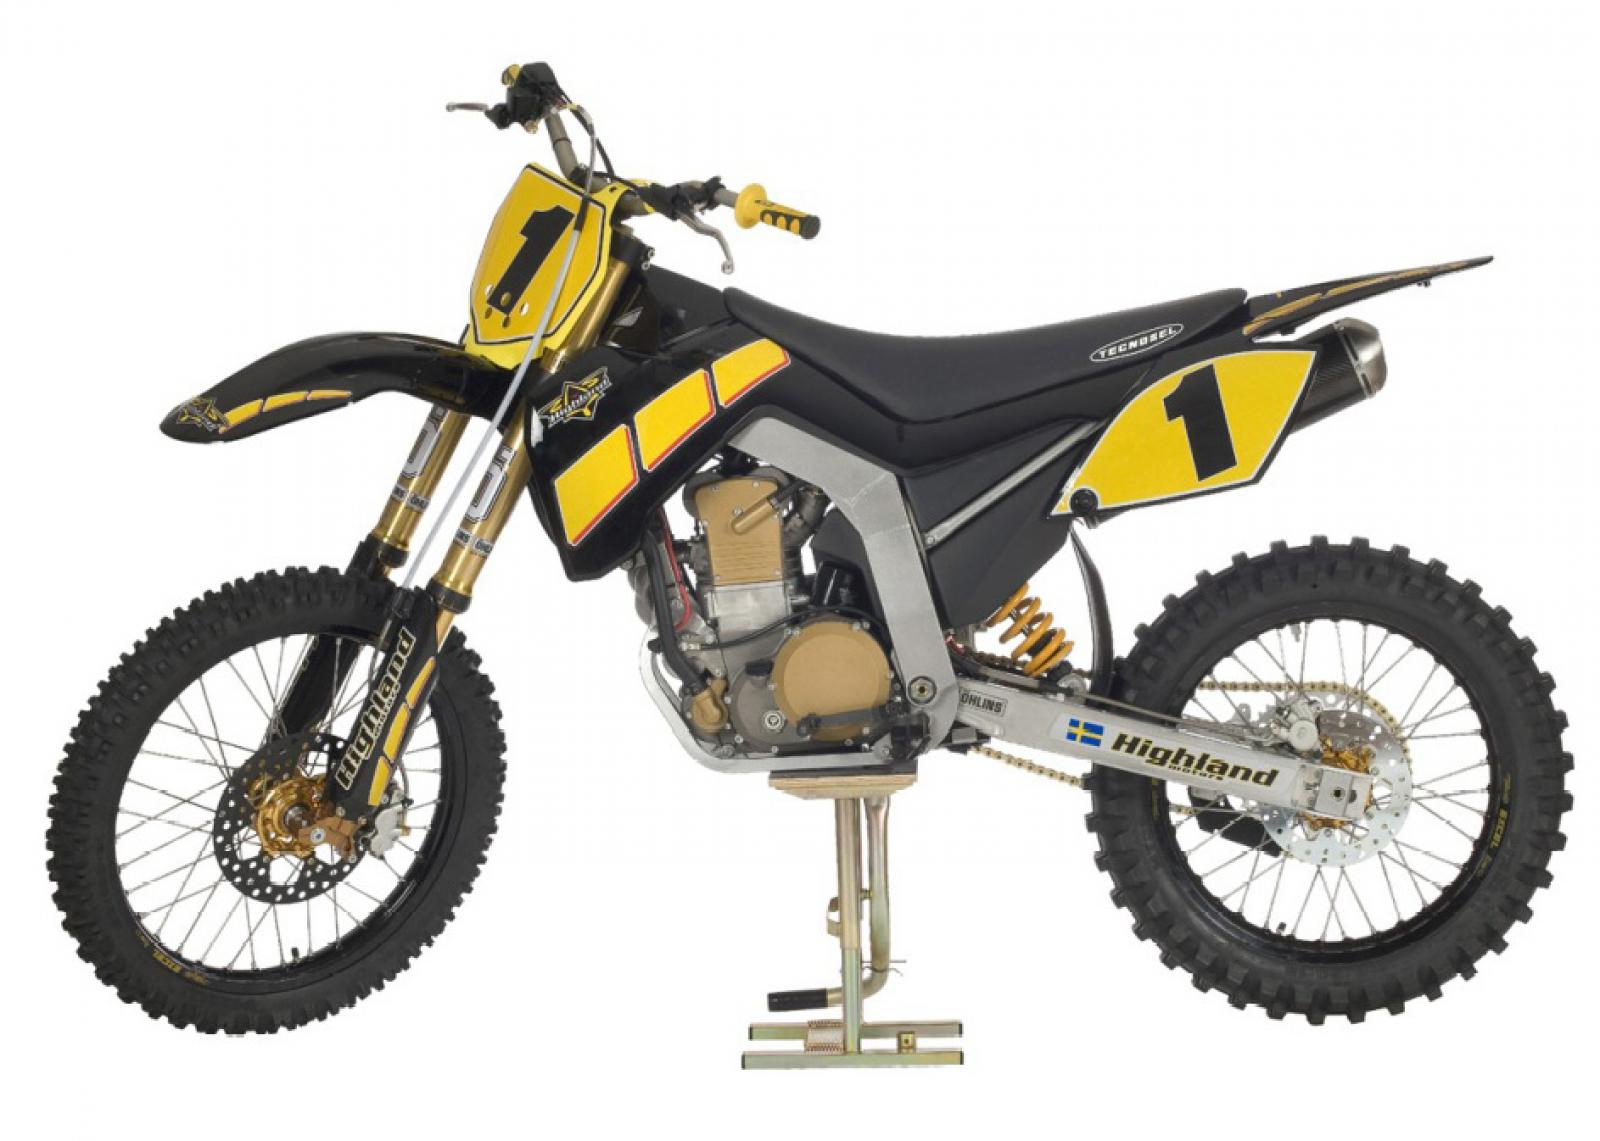 Highland 950 V2 Outback Supermoto 2005 images #97069